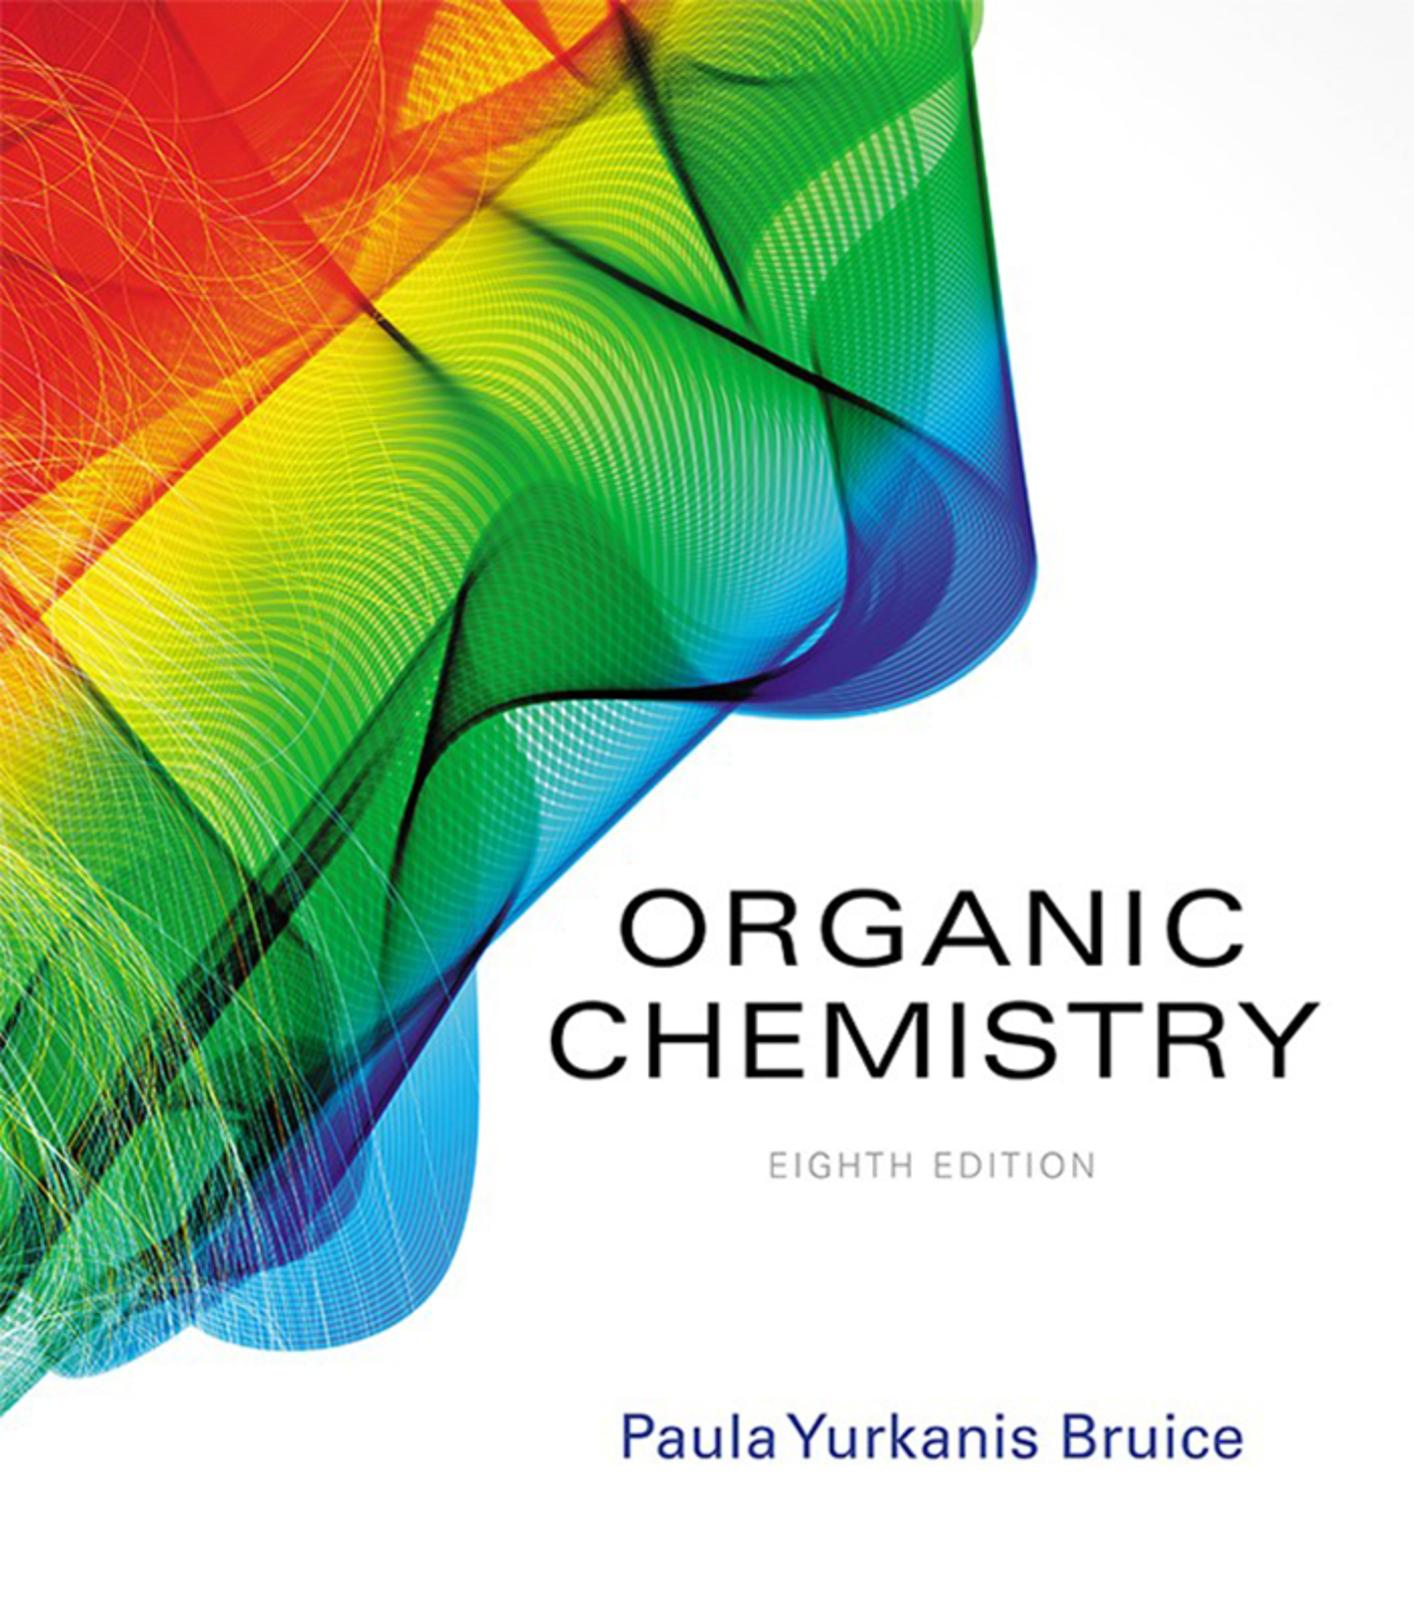 (PDF) Organic Chemistry 8th Edition By Paula Yurkanis Bruice Quimica Organica Download